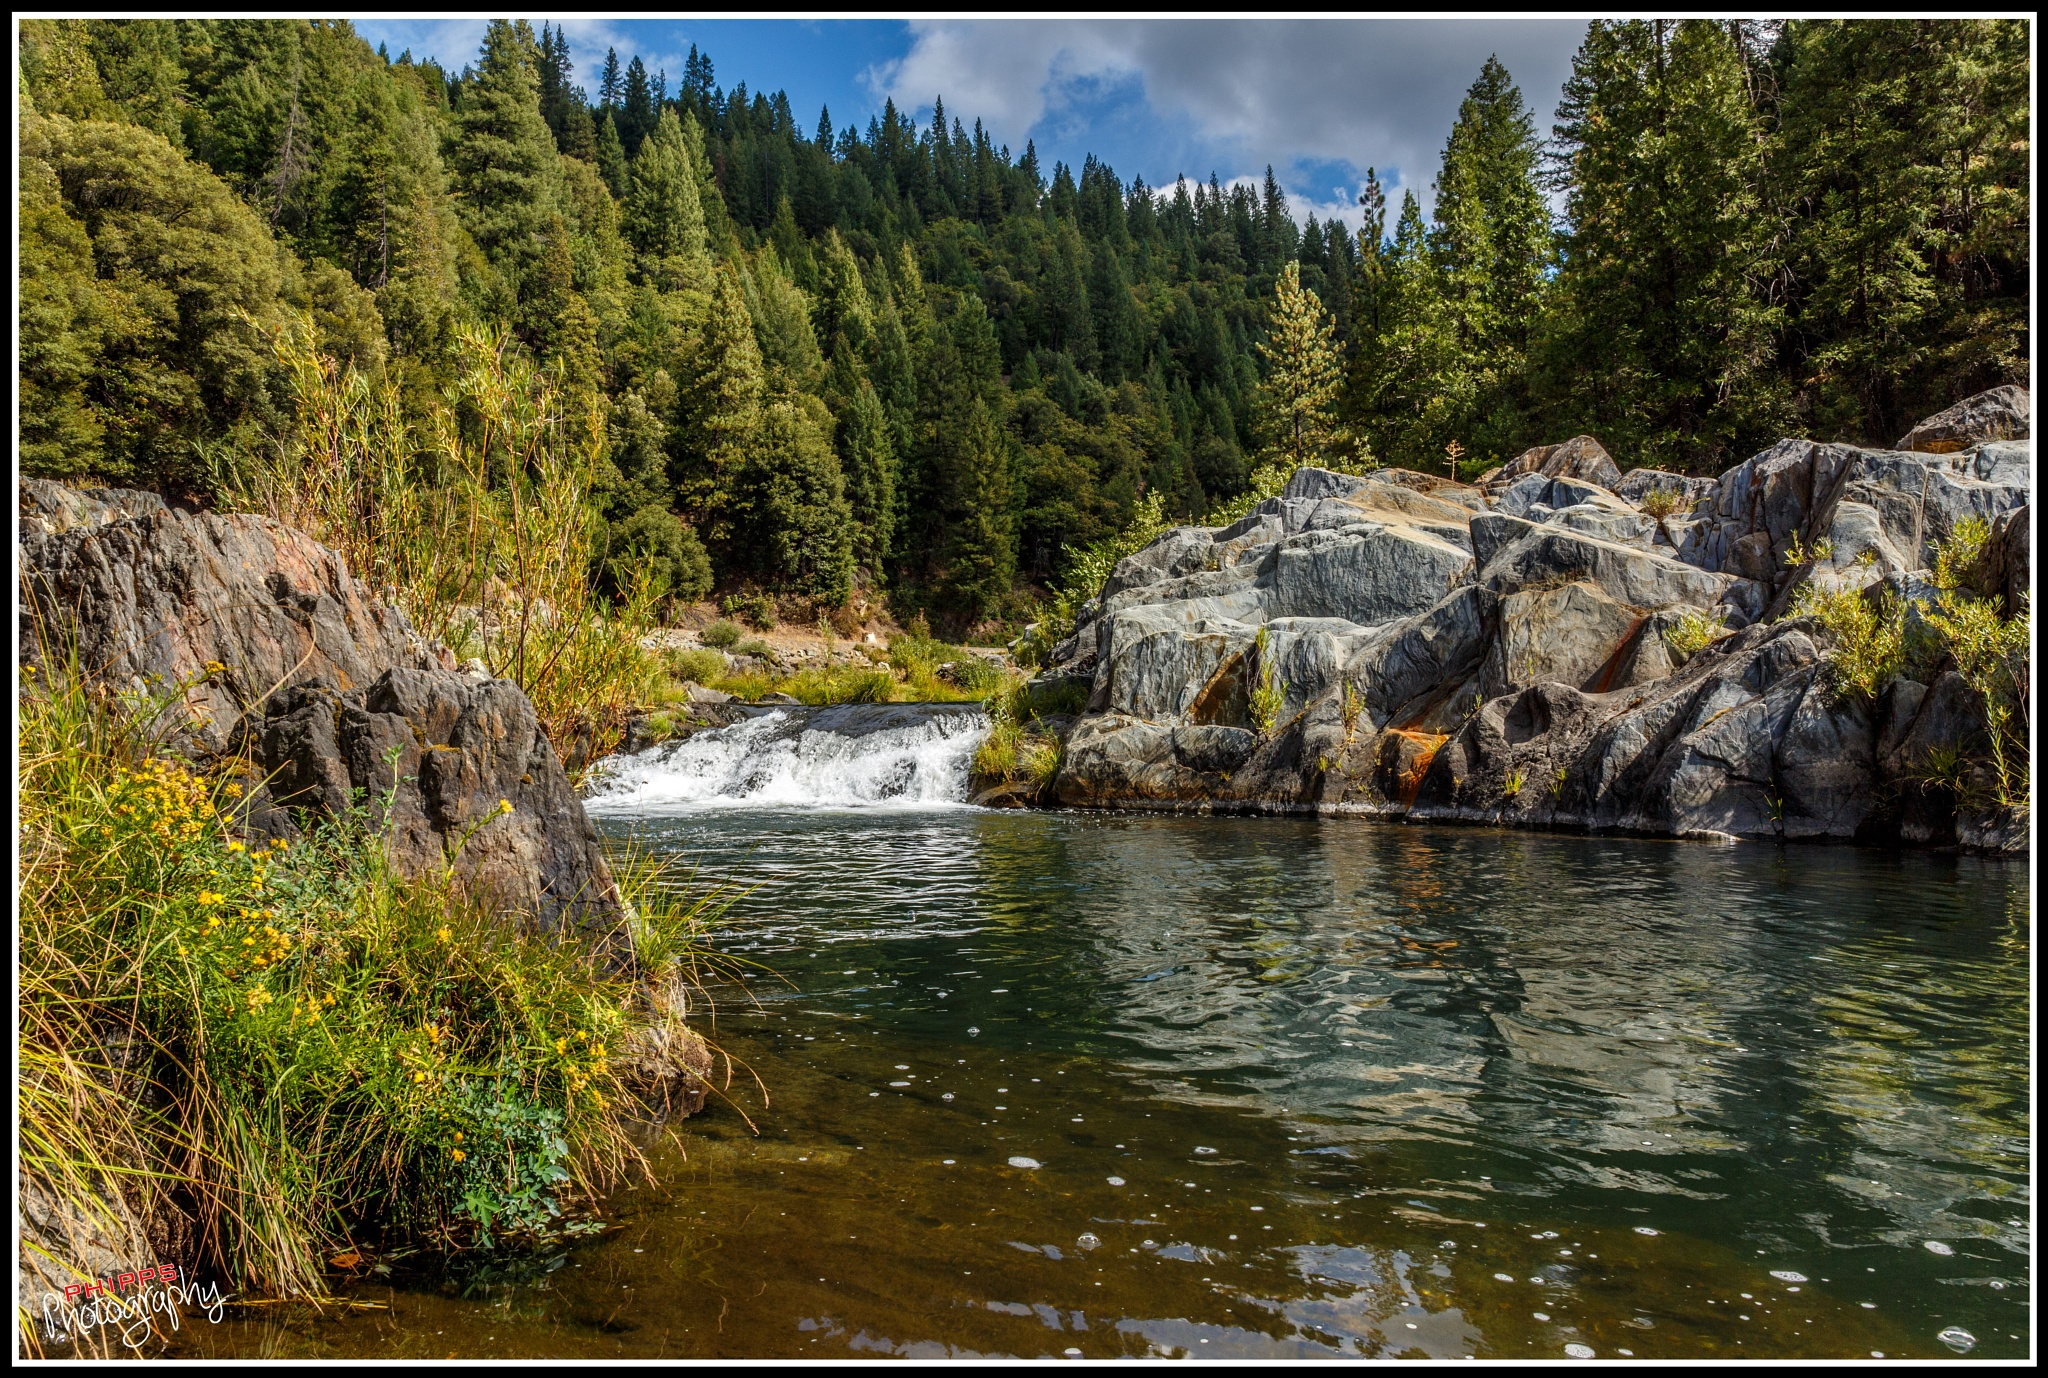 Small Falls, Feather River, California by PhippsPhotography